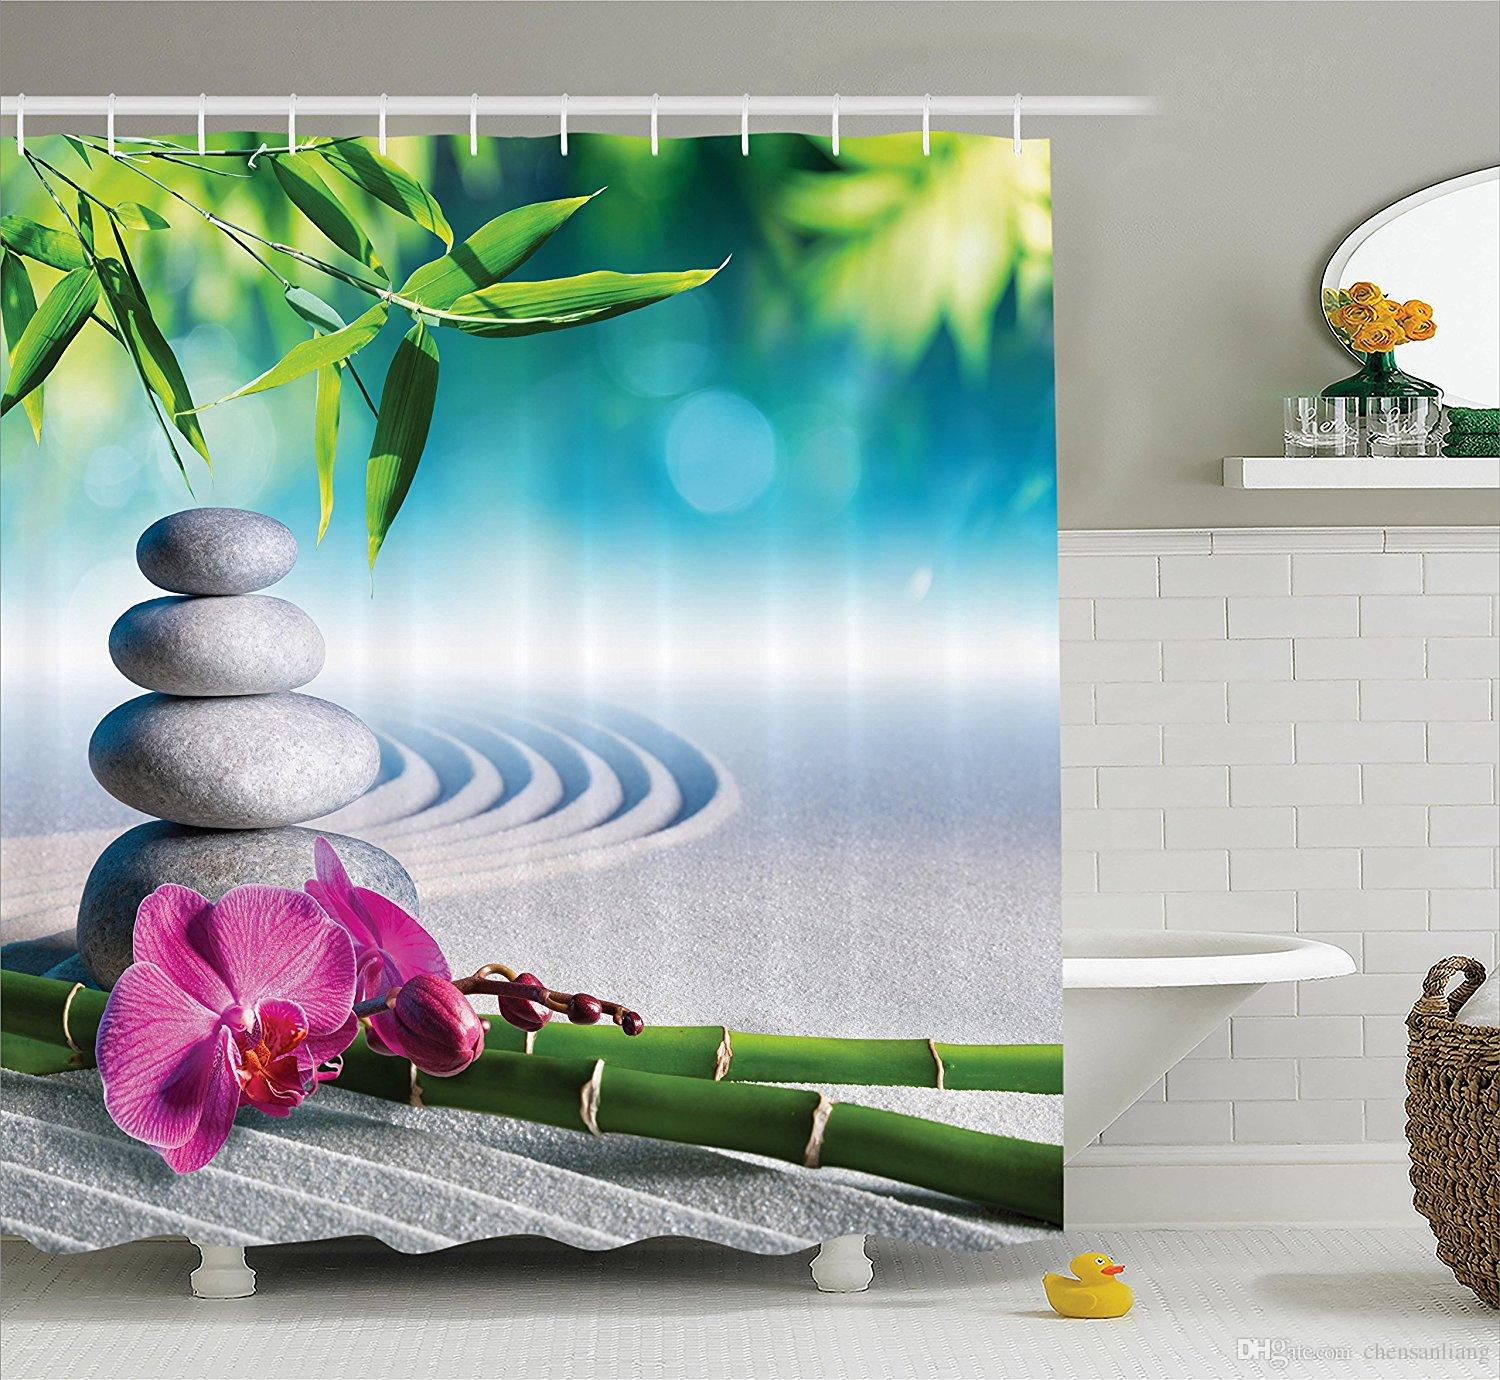 2018 Shower Curtain Stones In Zen Garden Orchid Bathroom Polyester Curtains Waterproof Antibacterial With 12 Hooks Bath From Chensanliang